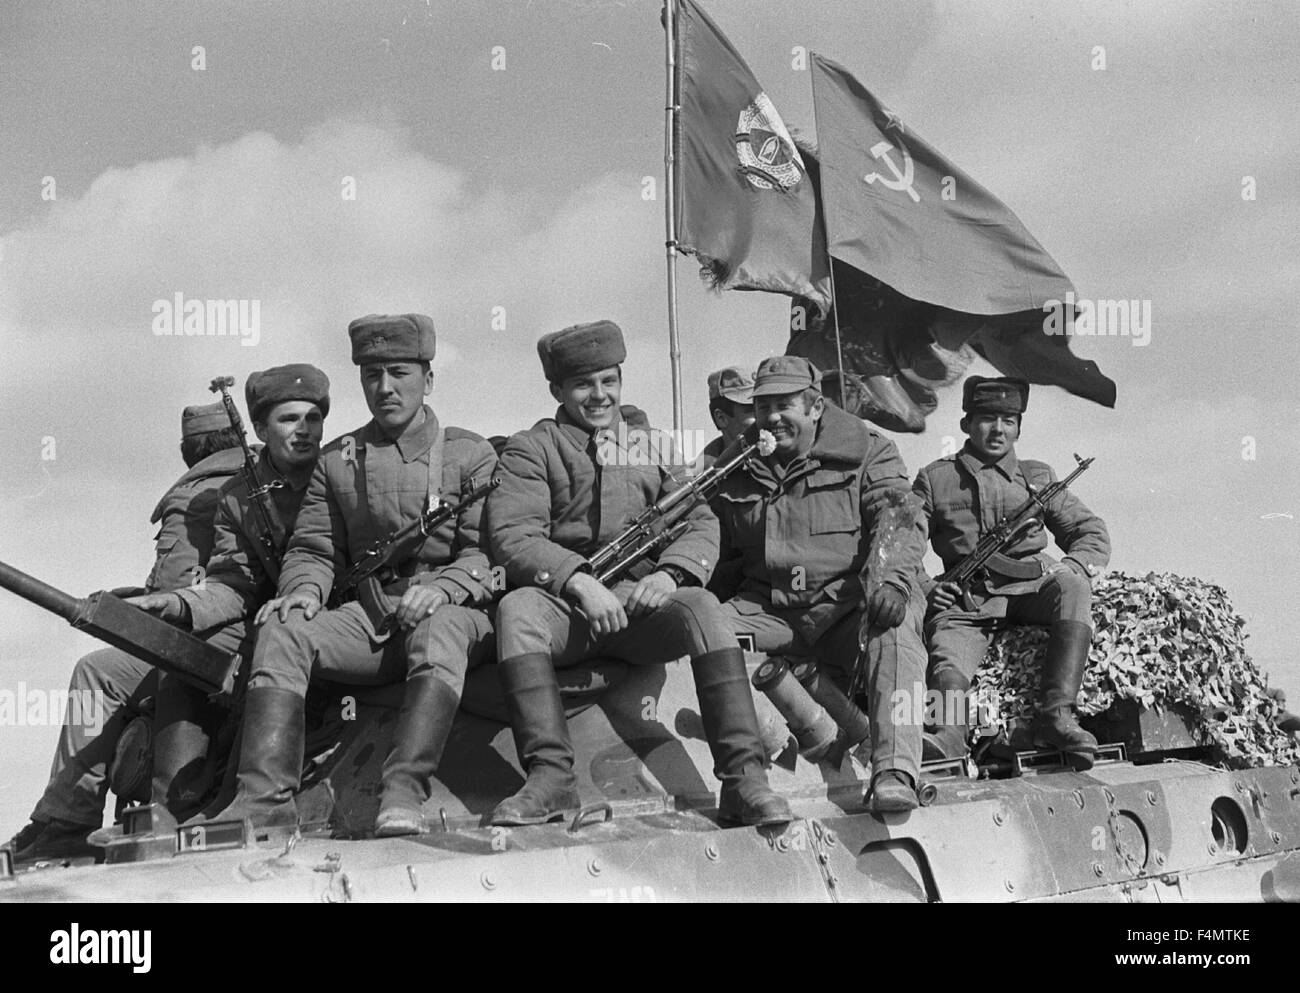 Soviet Afghanistan war - Page 6 Ussr-termez-withdrawal-of-soviet-forces-from-afghanistan-soldiers-F4MTKE